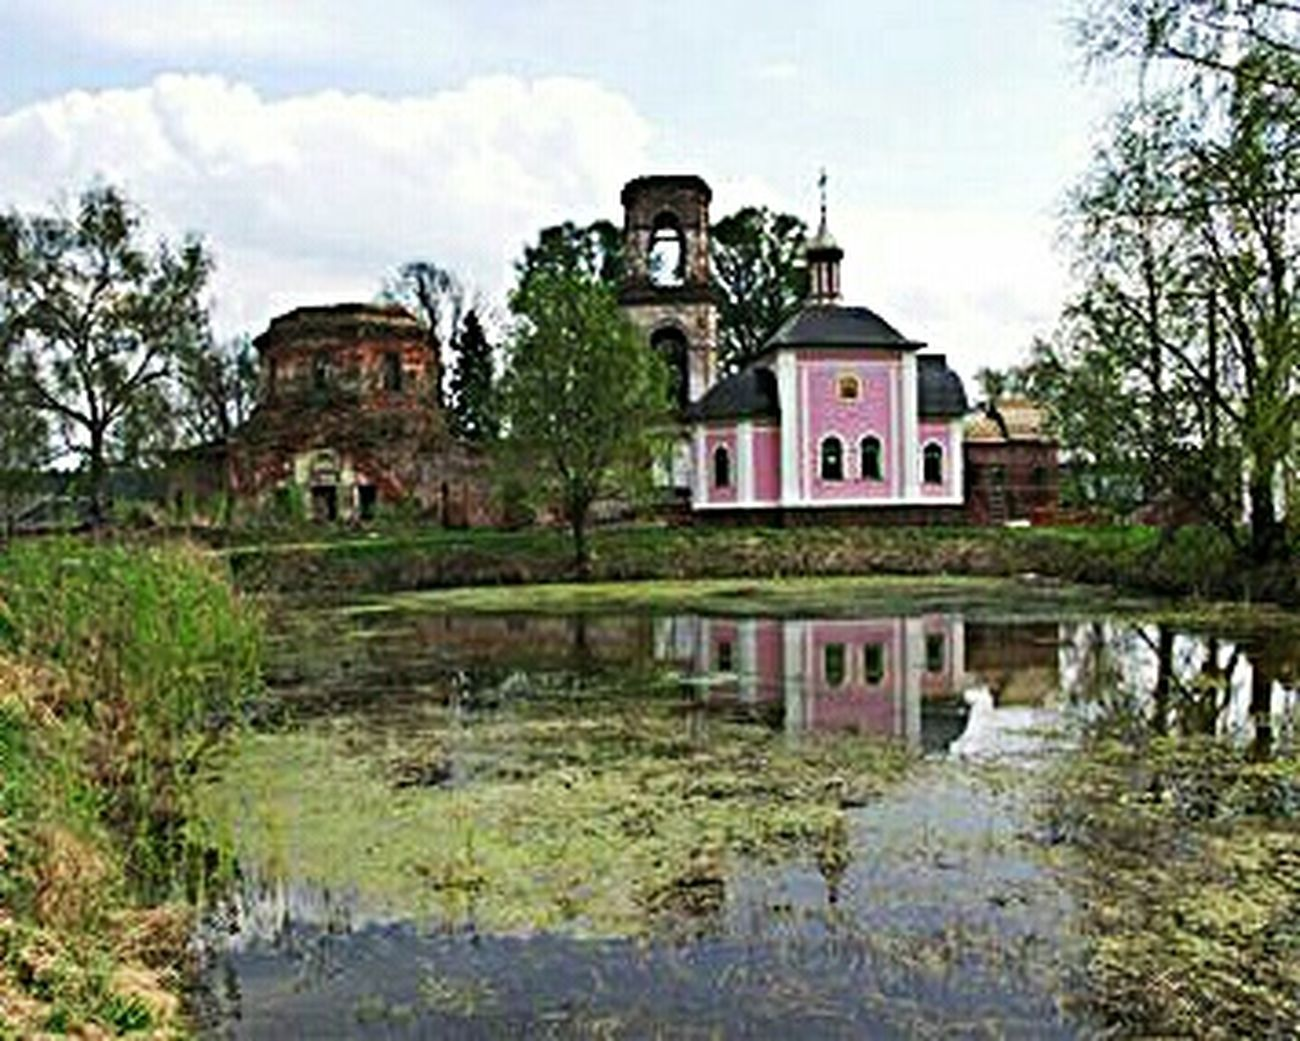 Церковь старая церковь EyeEm Best Shots Eye4photography  EyeEm EyeEm Gallery Check This Out Church Monastery Old Church